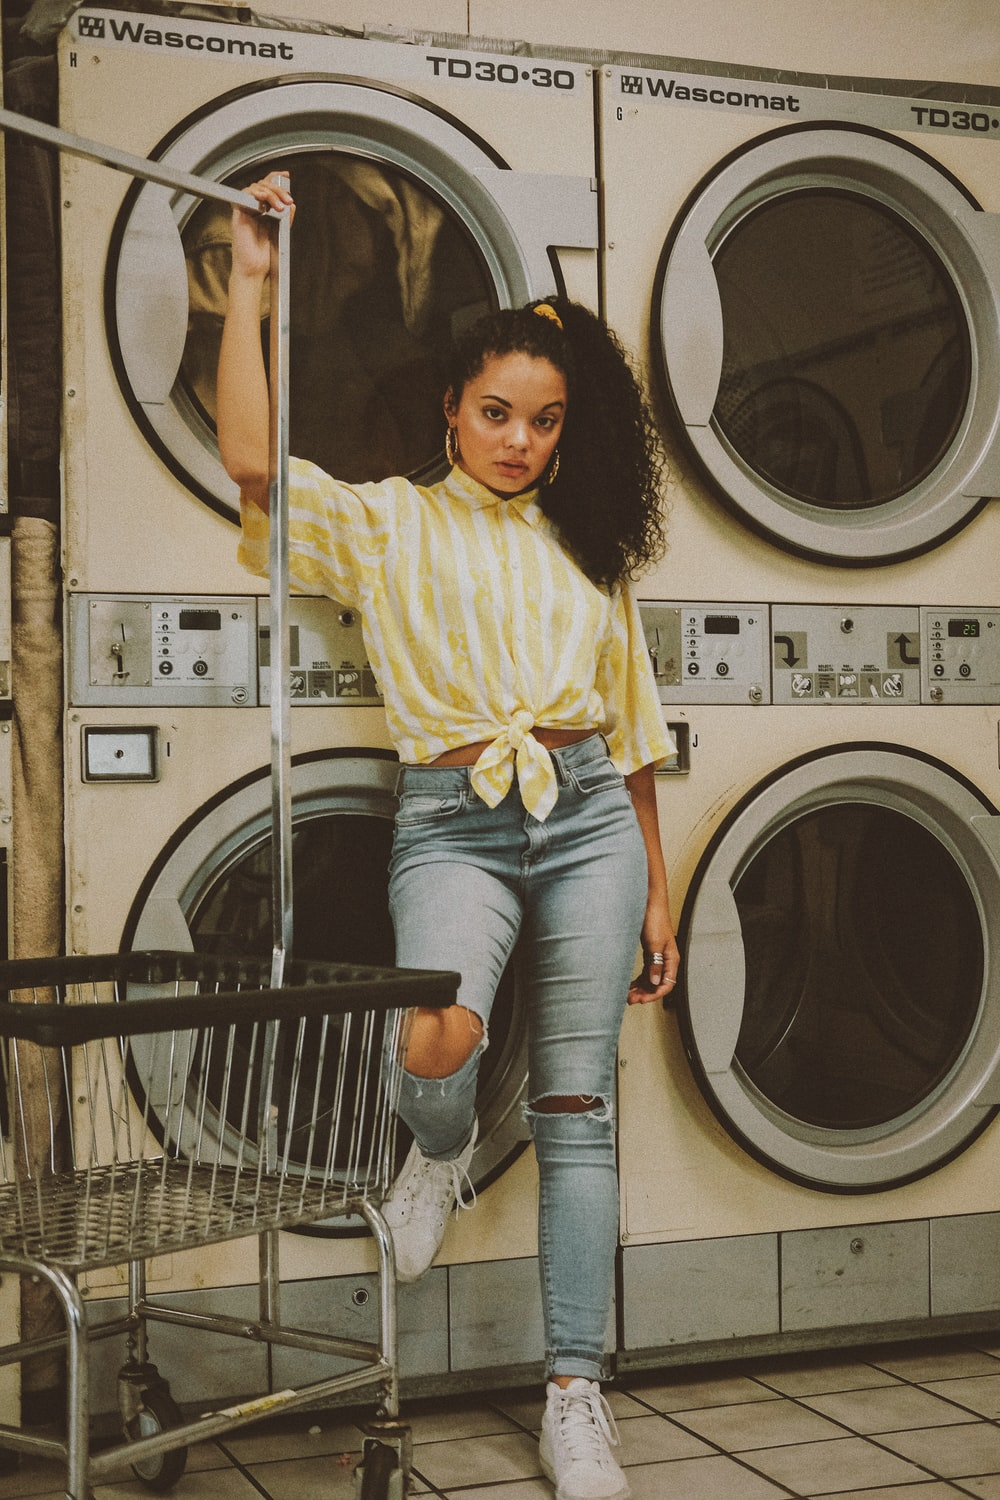 Laundromat Pictures Download Free Images On Unsplash